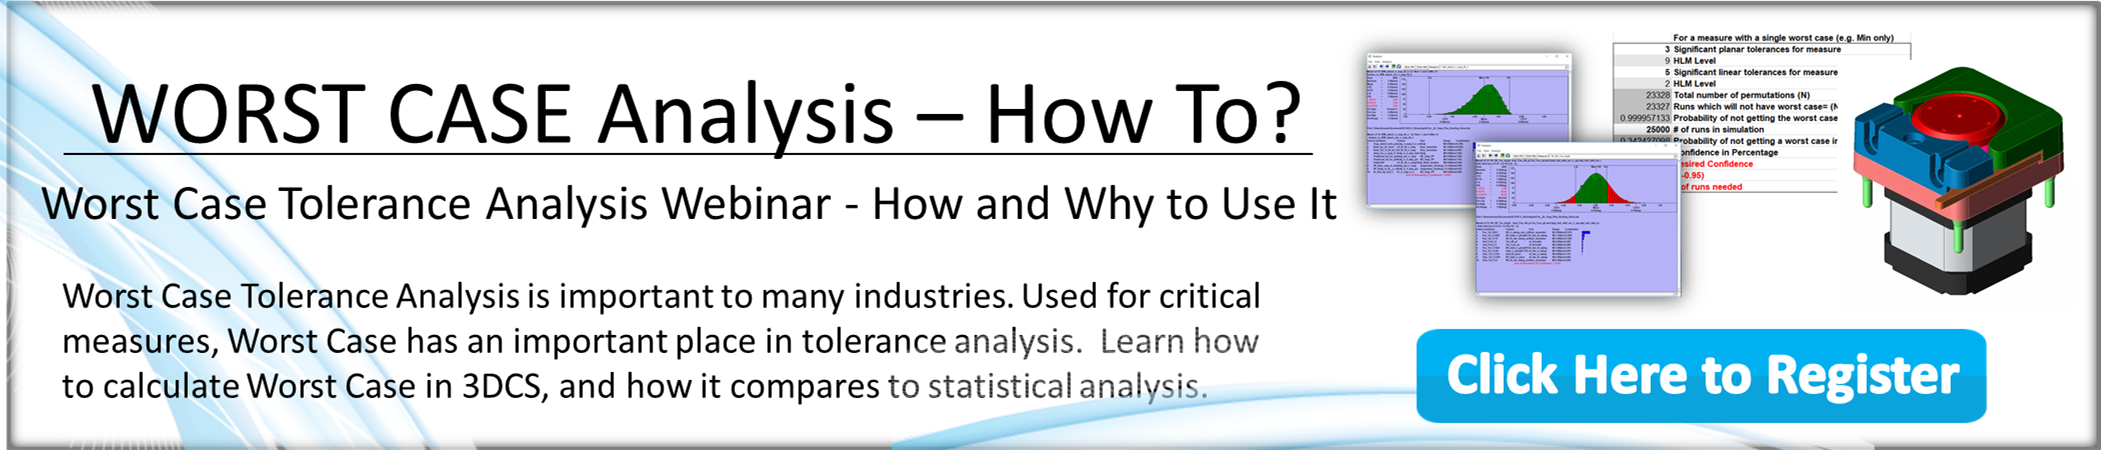 Worst Case Tolerance Analysis Webinar